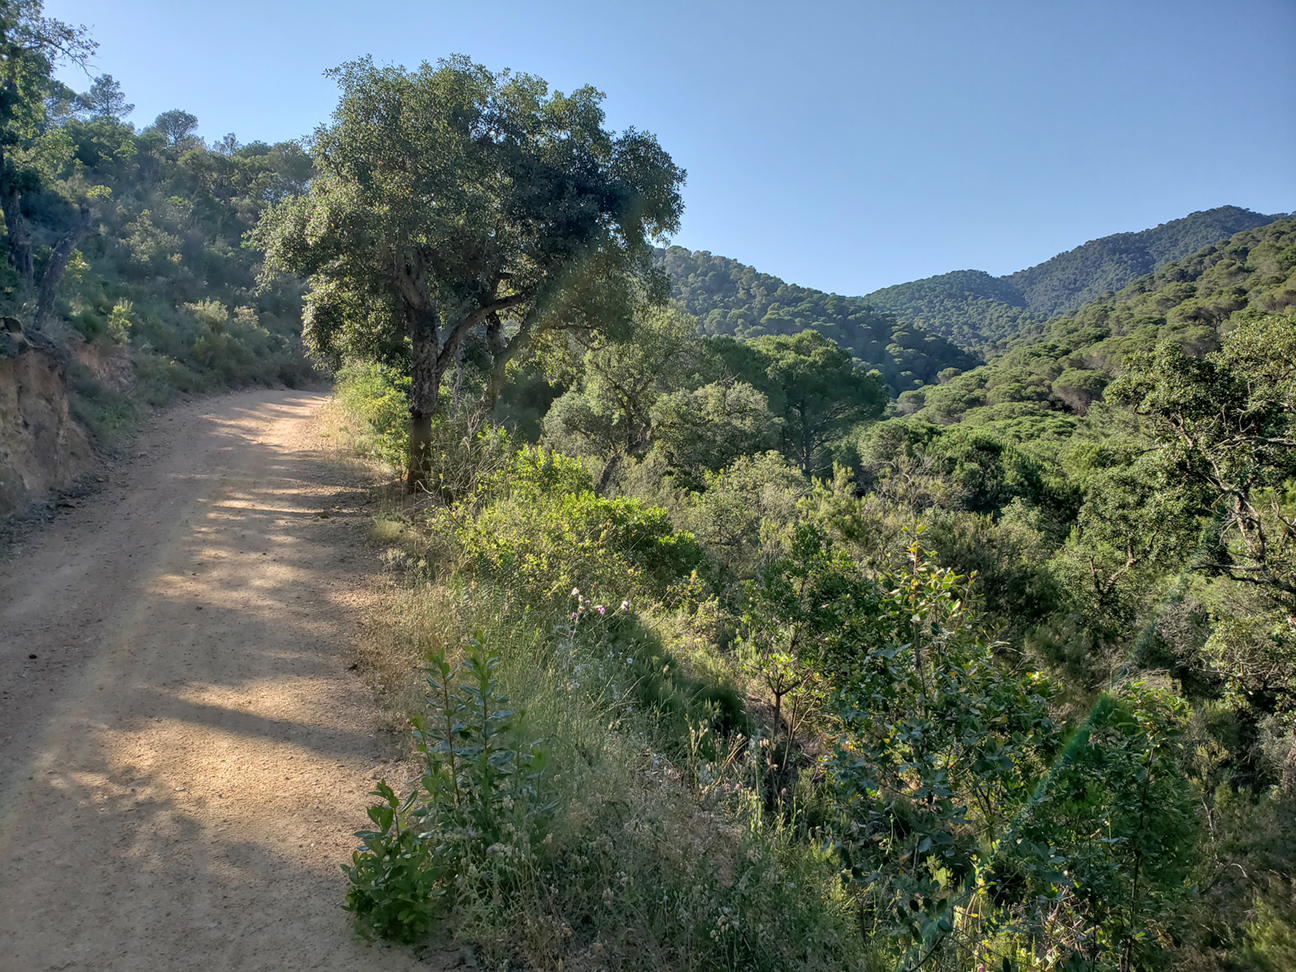 Inland hike from Tossa to the Puig de Cadiretes.